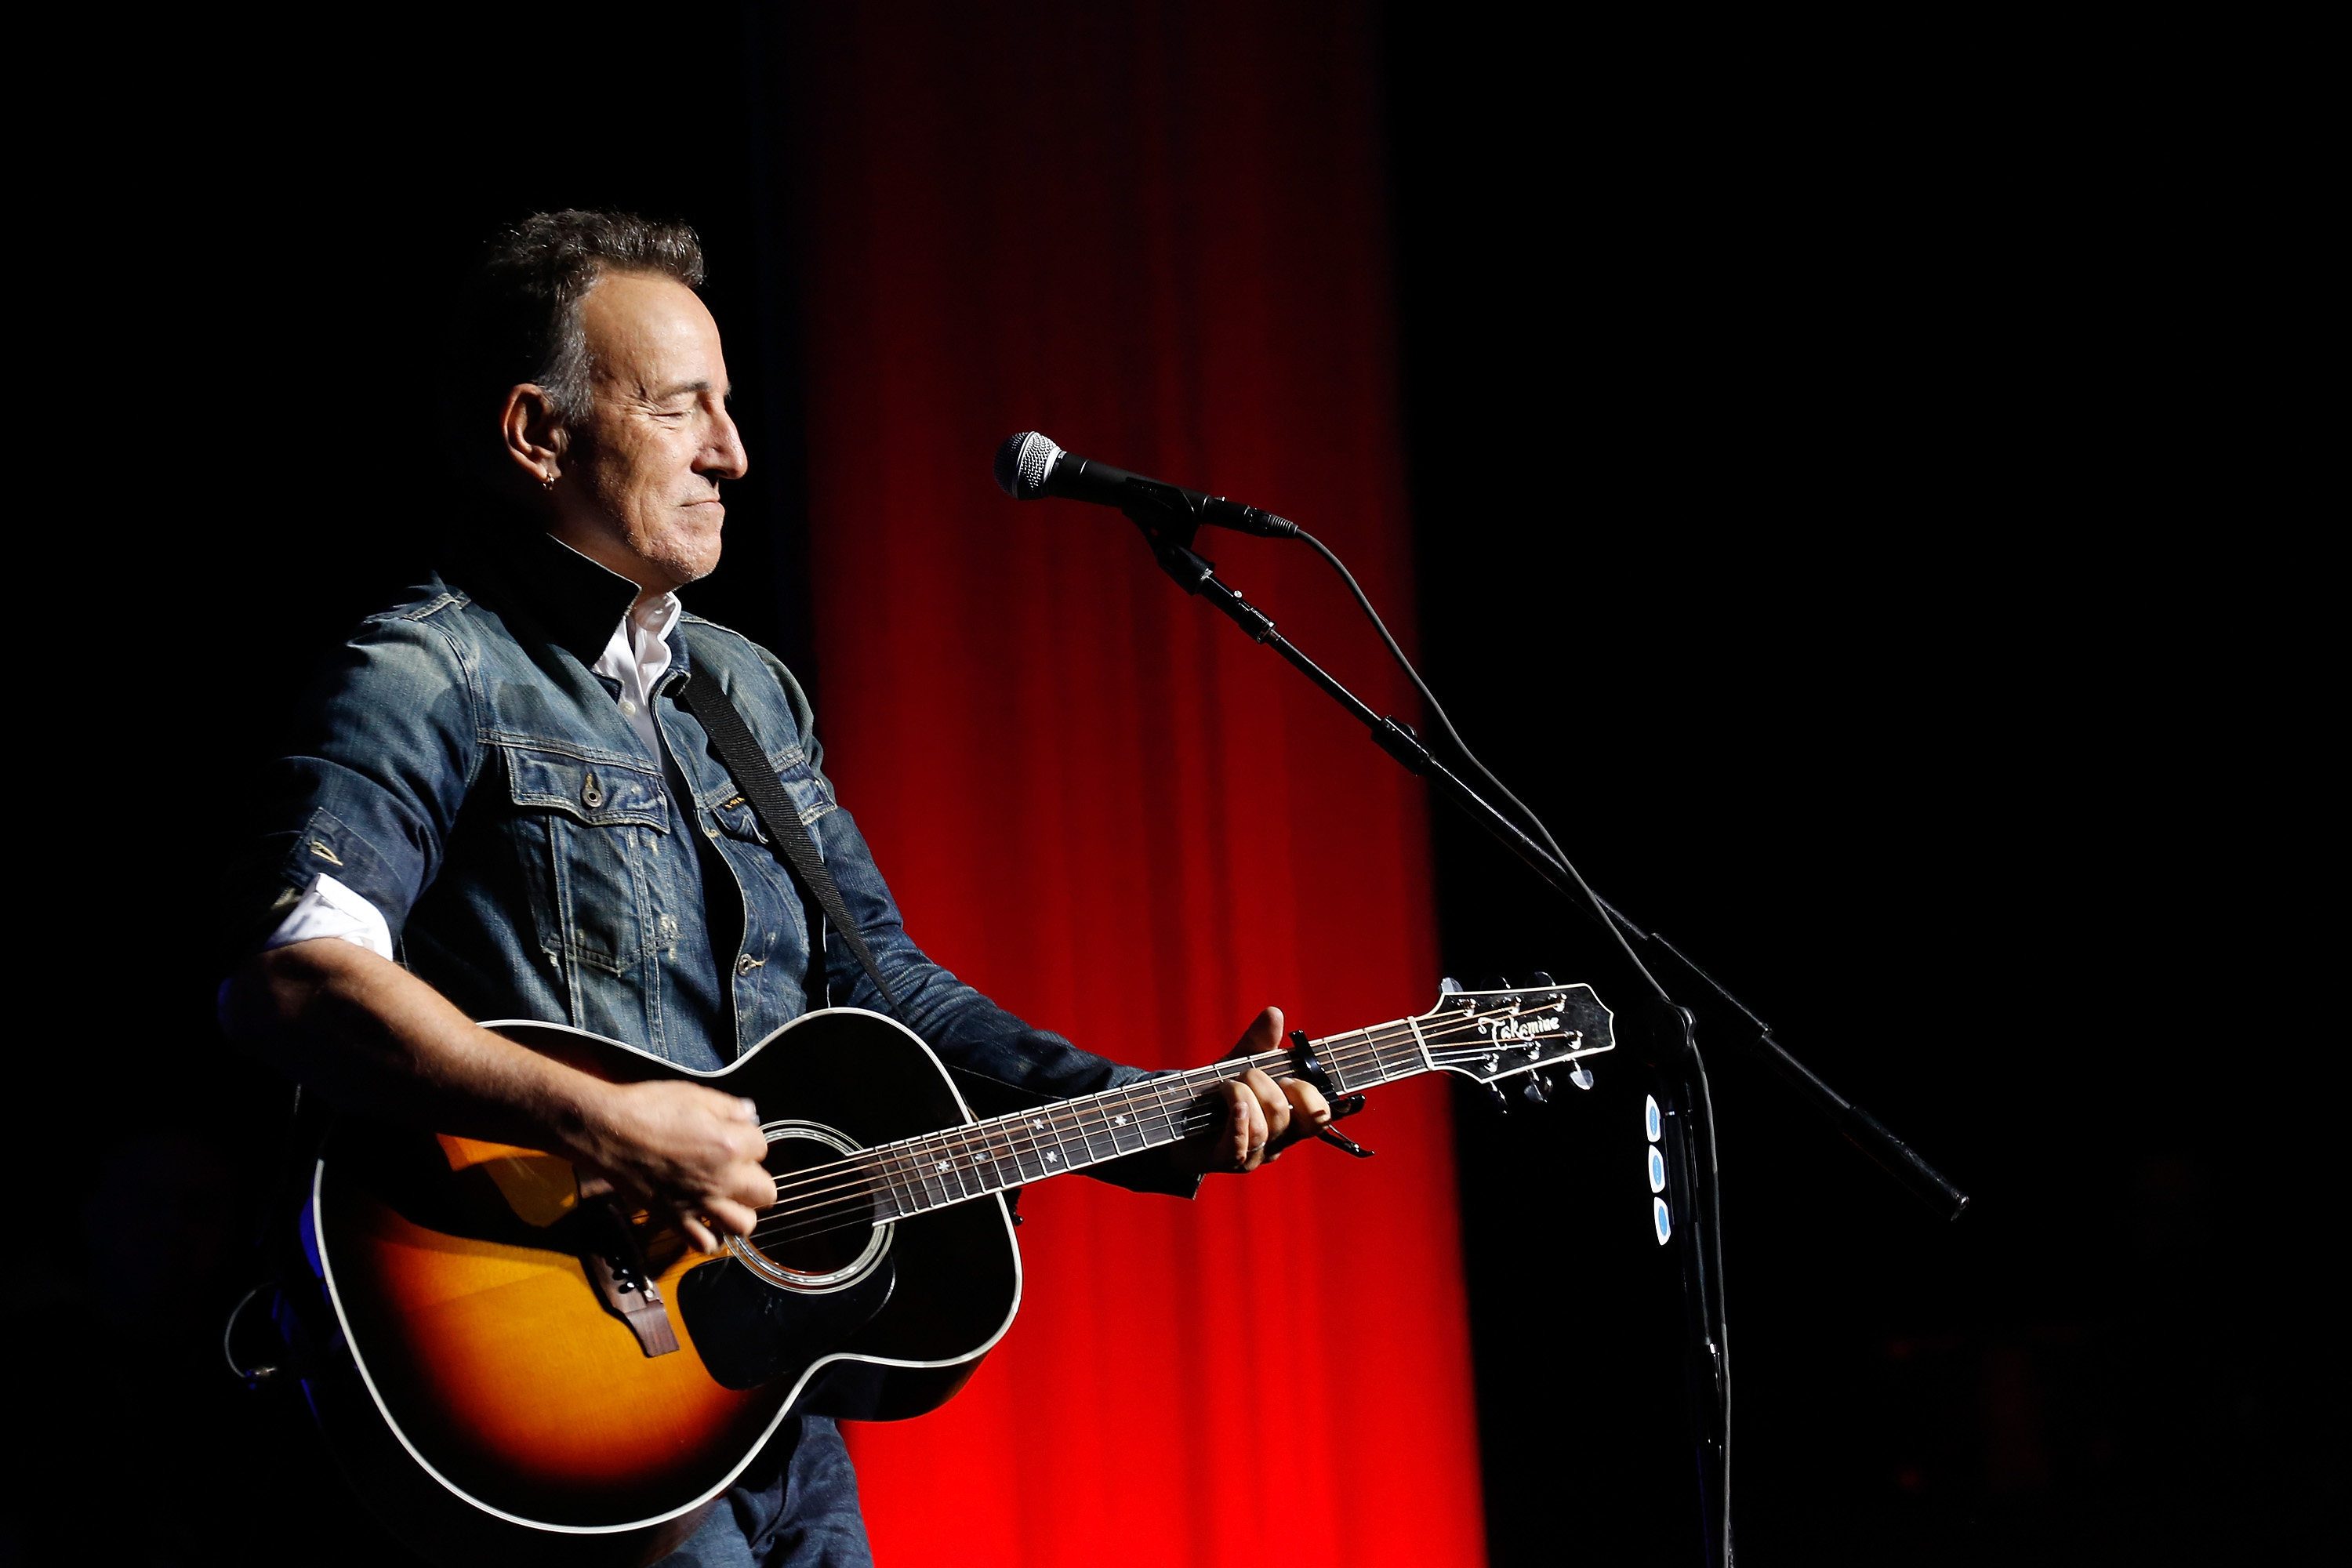 DWI charges dropped against Bruce Springsteen, who pleads guilty to just drinking in the park